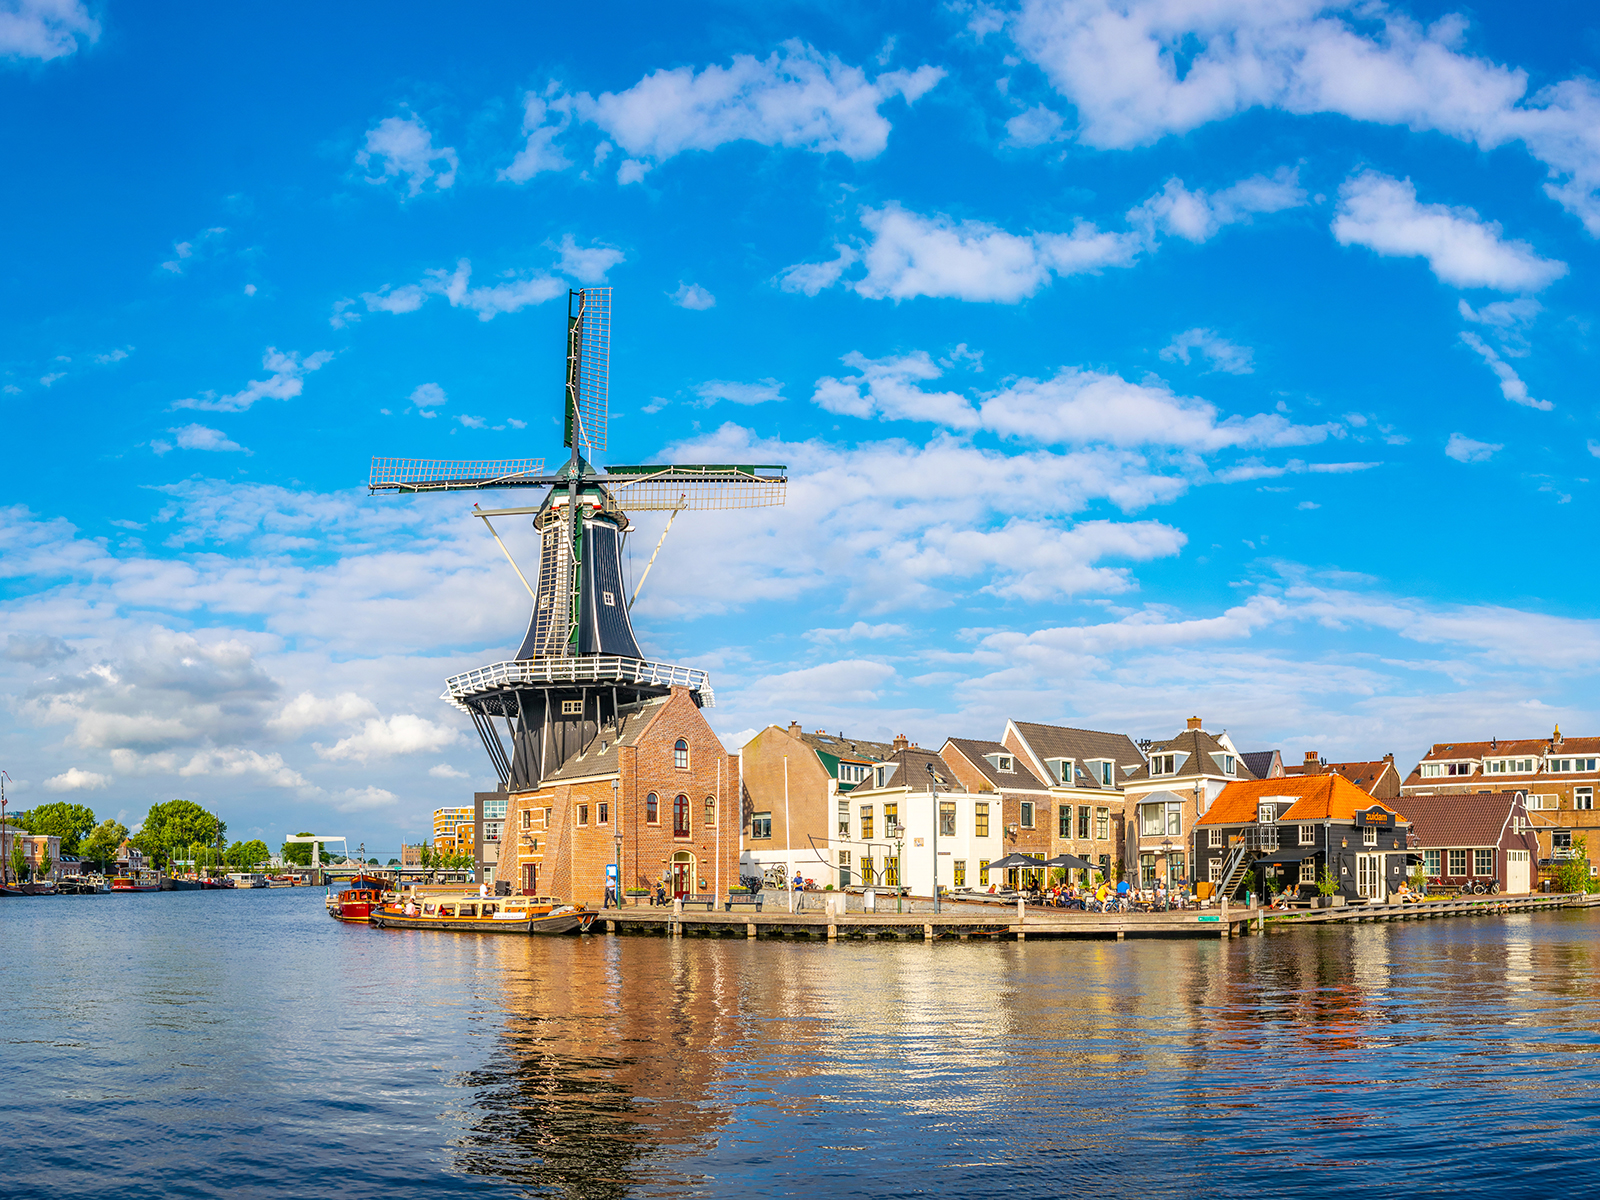 dmc-holland-netherlands-amsterdam-incentive-S02